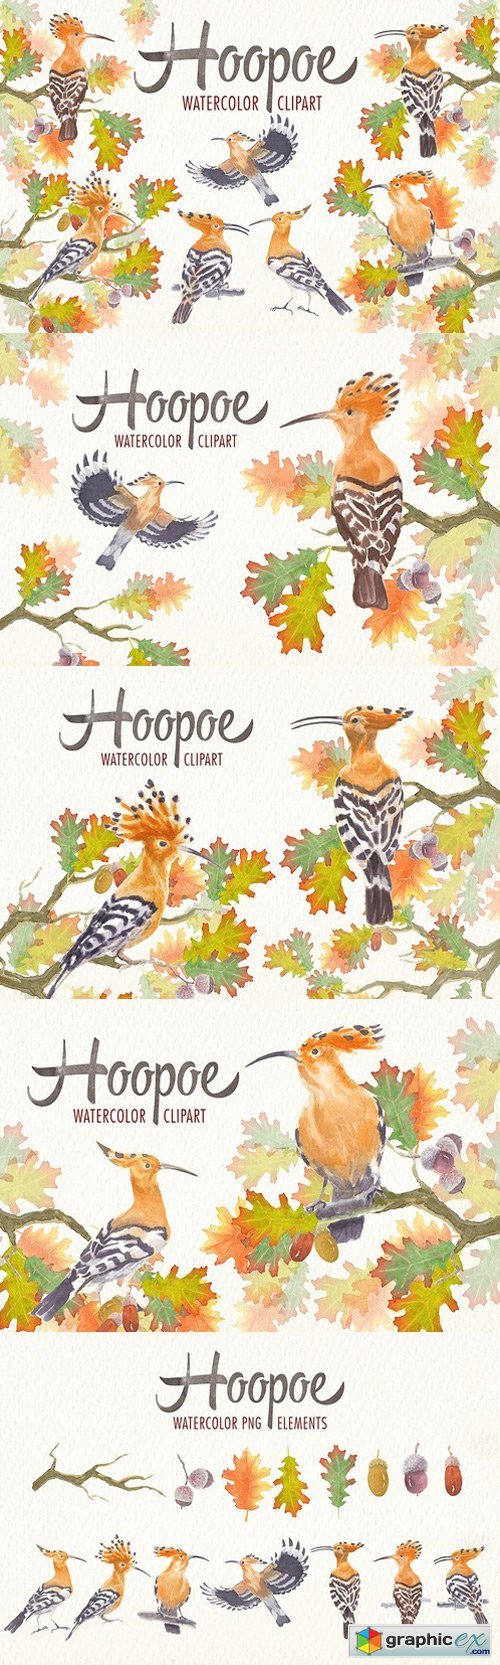 watercolor hoopoe bird clipart stock images free